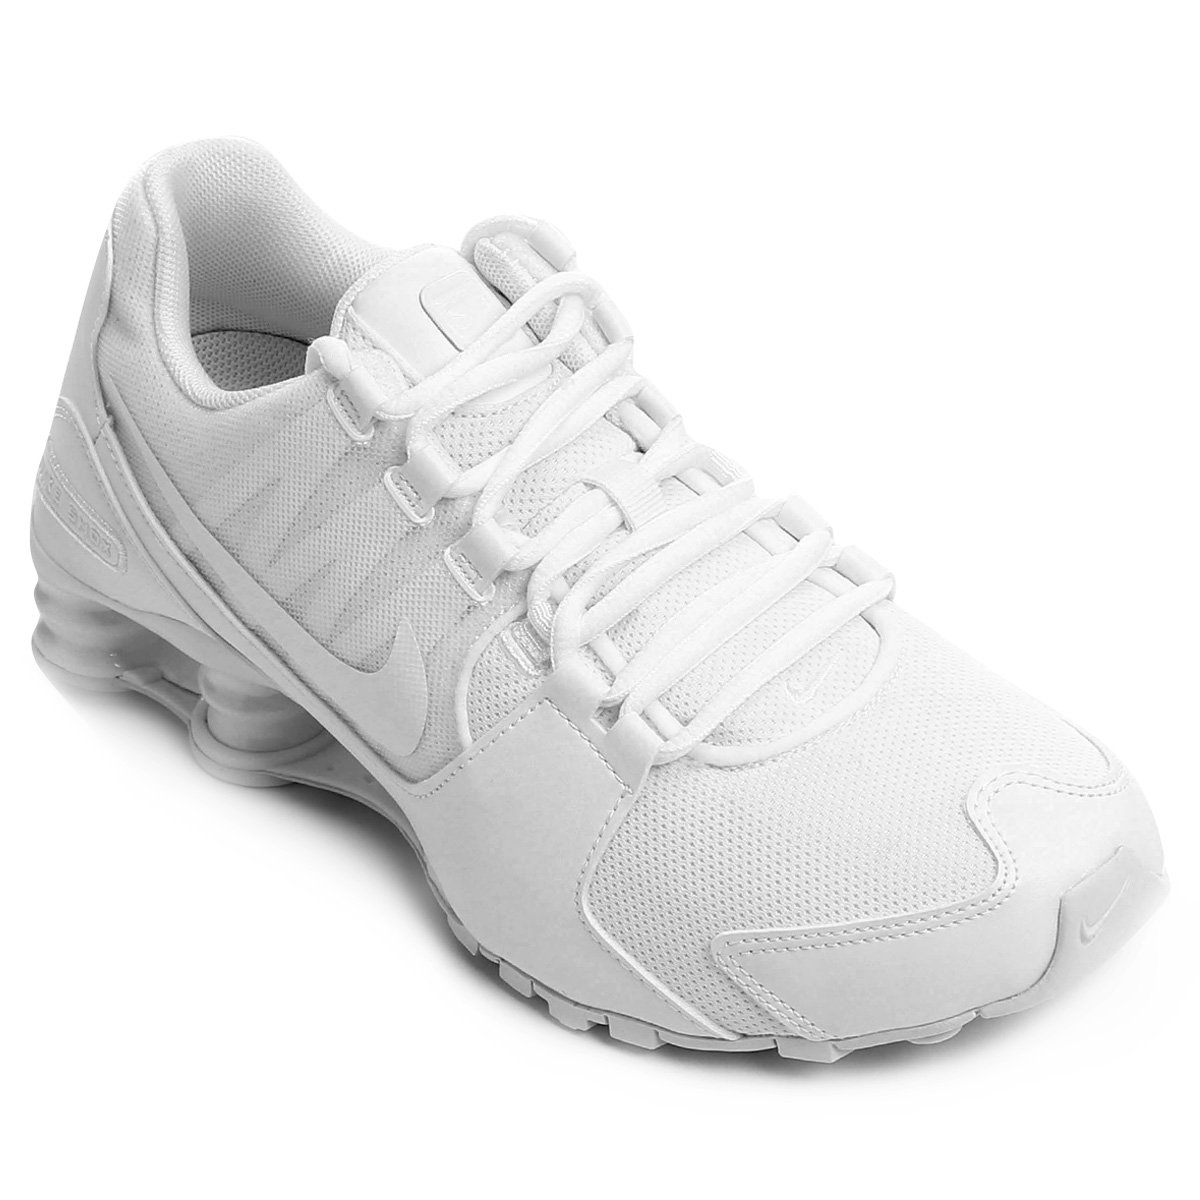 outlet store a5133 31be9 Tênis Nike Shox Avenue Masculino   Loja do Inter